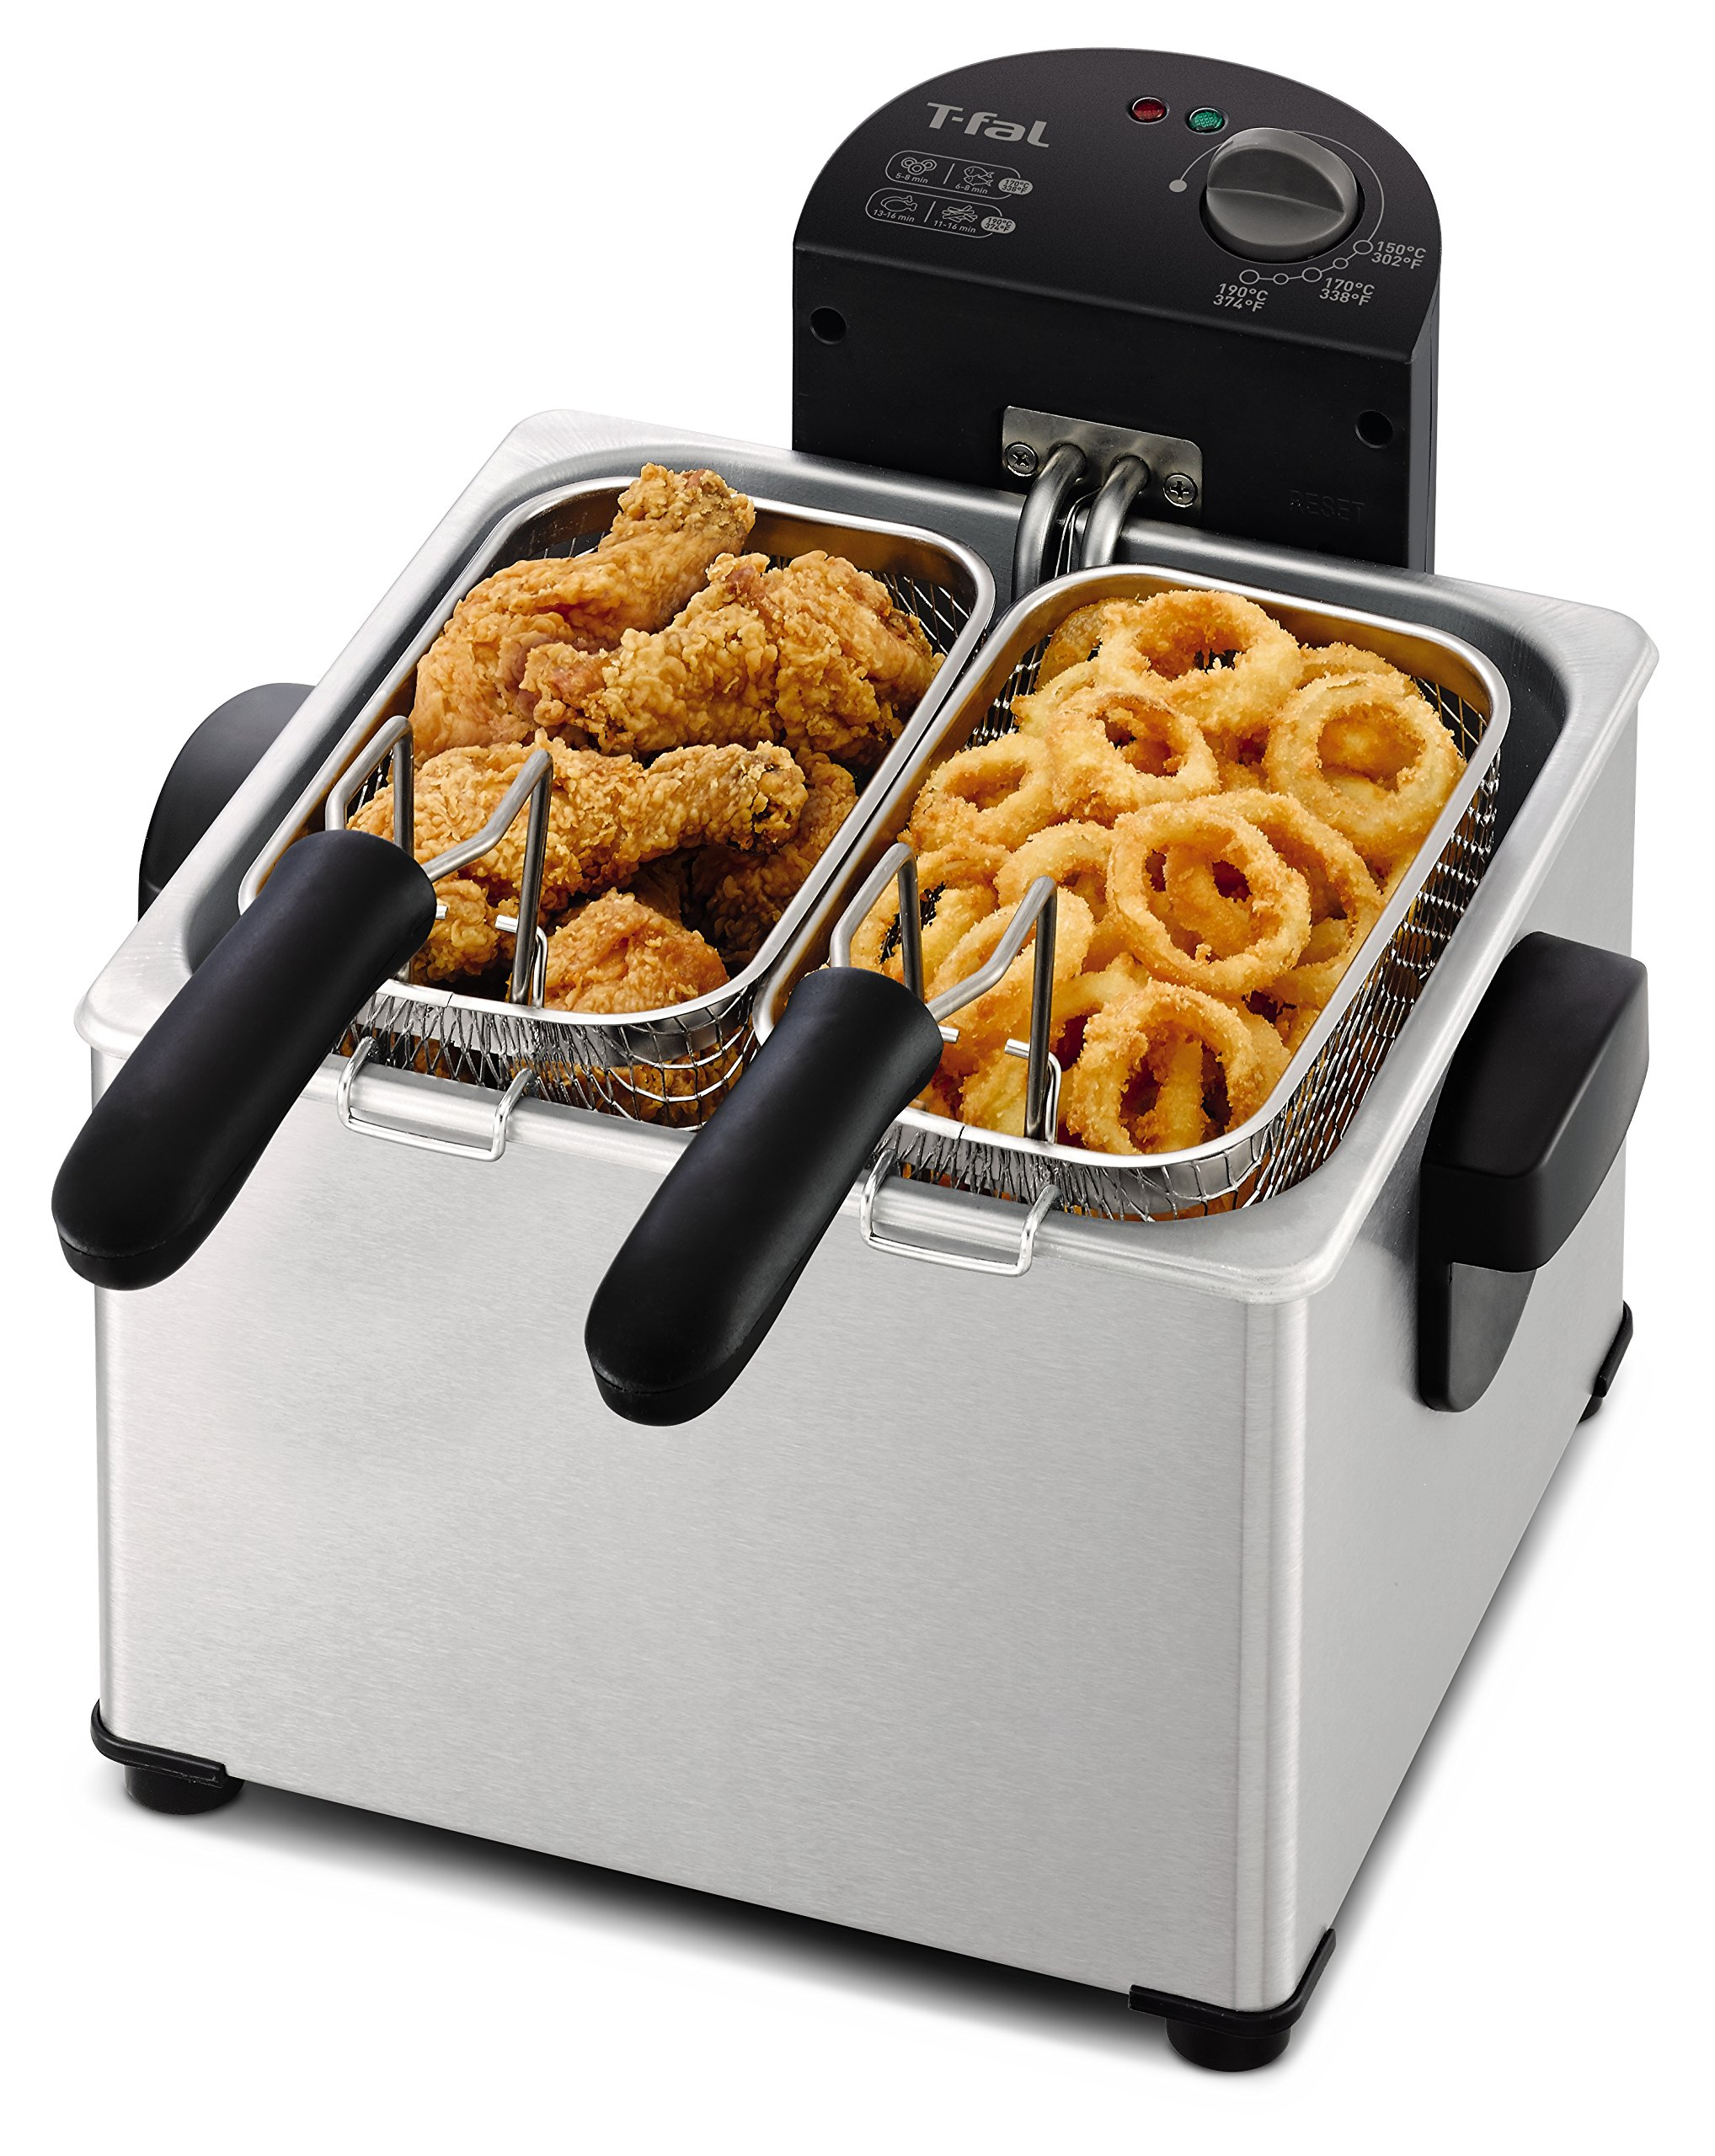 T-fal FR3900 Triple Basket Deep Fryer with Stainless Steel Removable Pot and Professional Heating Element, 4-Liter, 4.2 Qt, Stainless Steel by T-fal